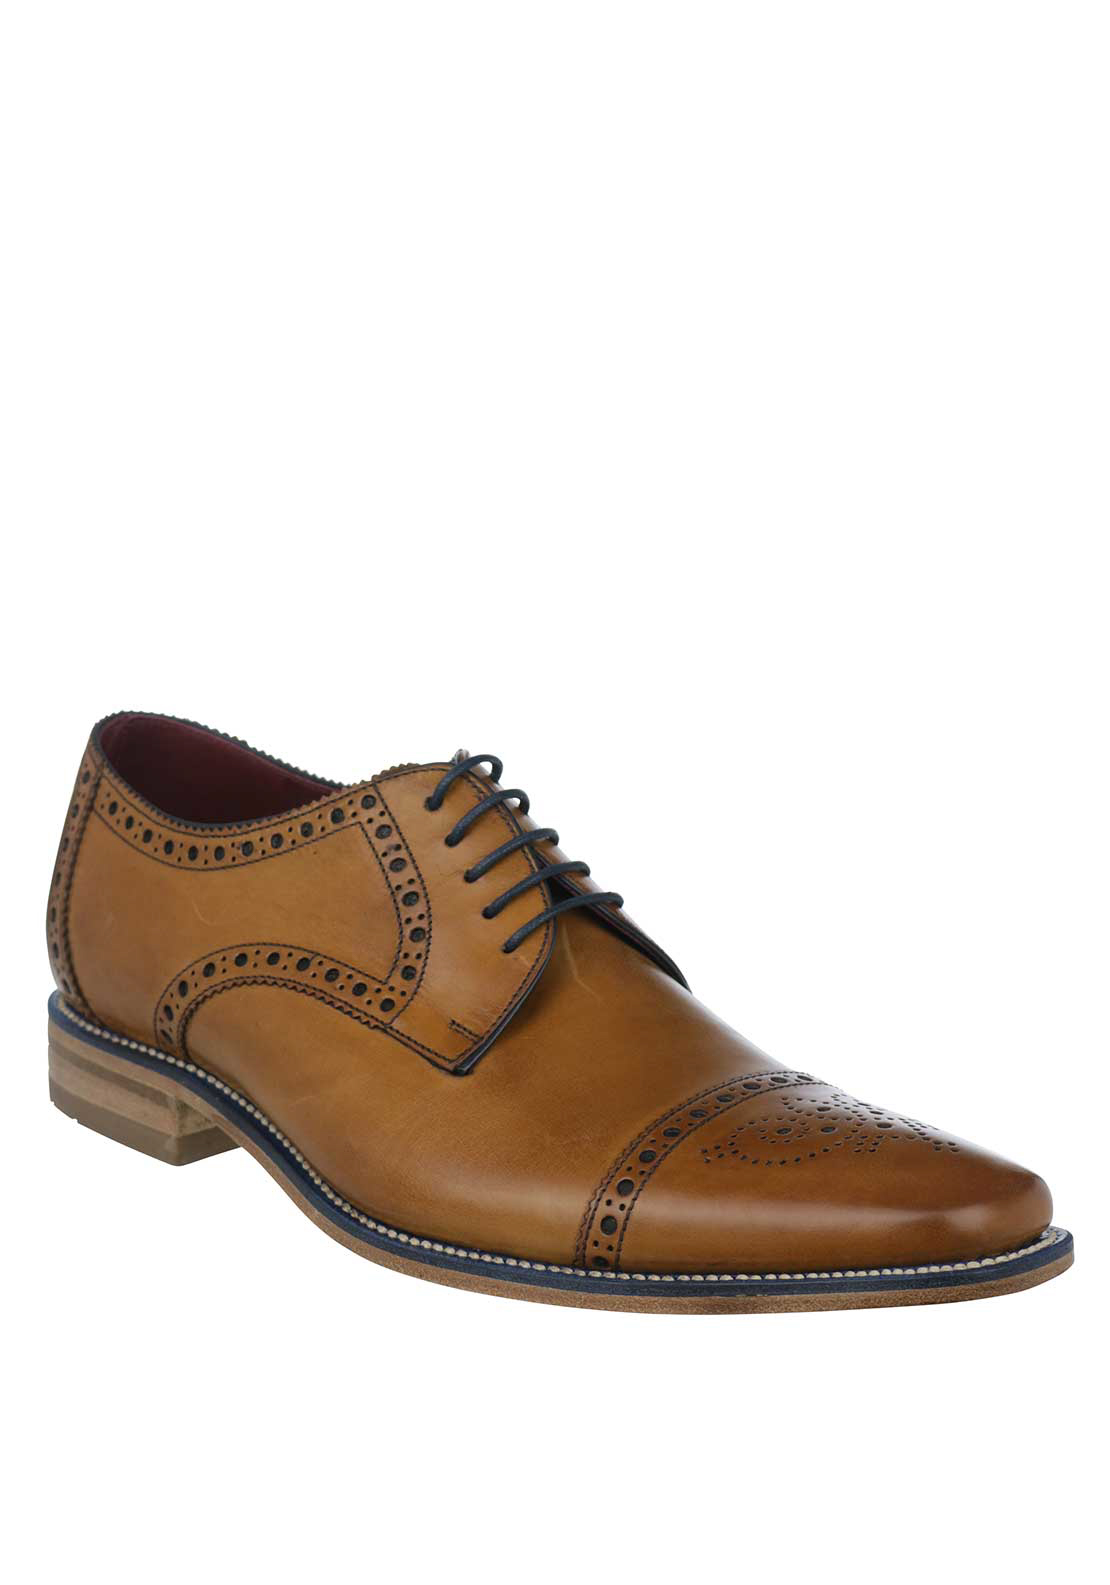 Loake Foley Lace Up Leather Brogue Shoe, Tan